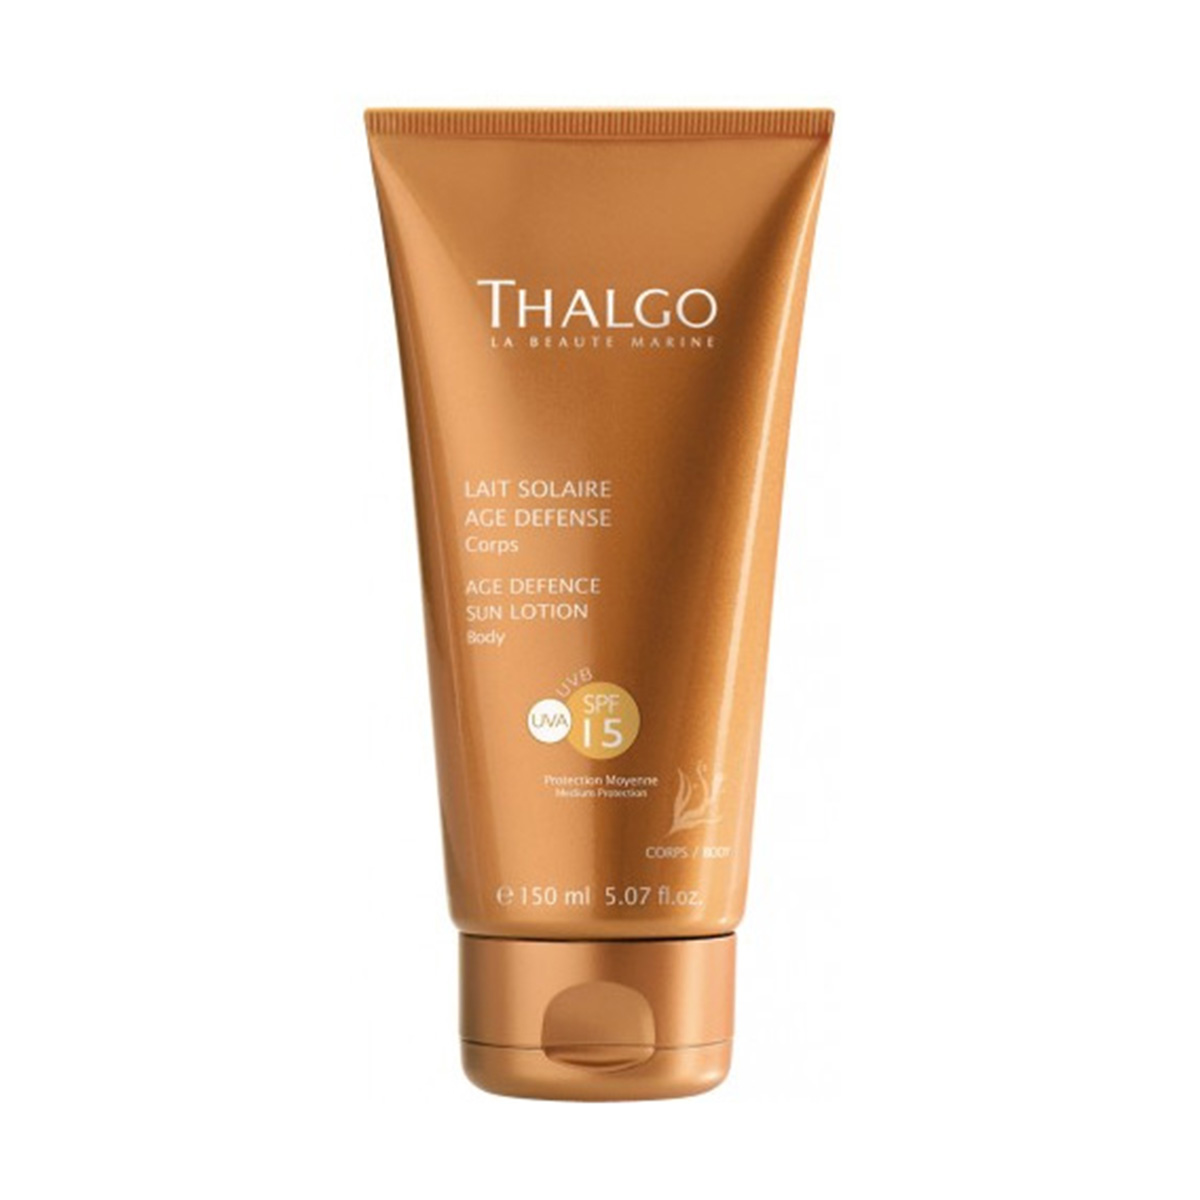 Thalgo age defense sun lotion spf15 150ml